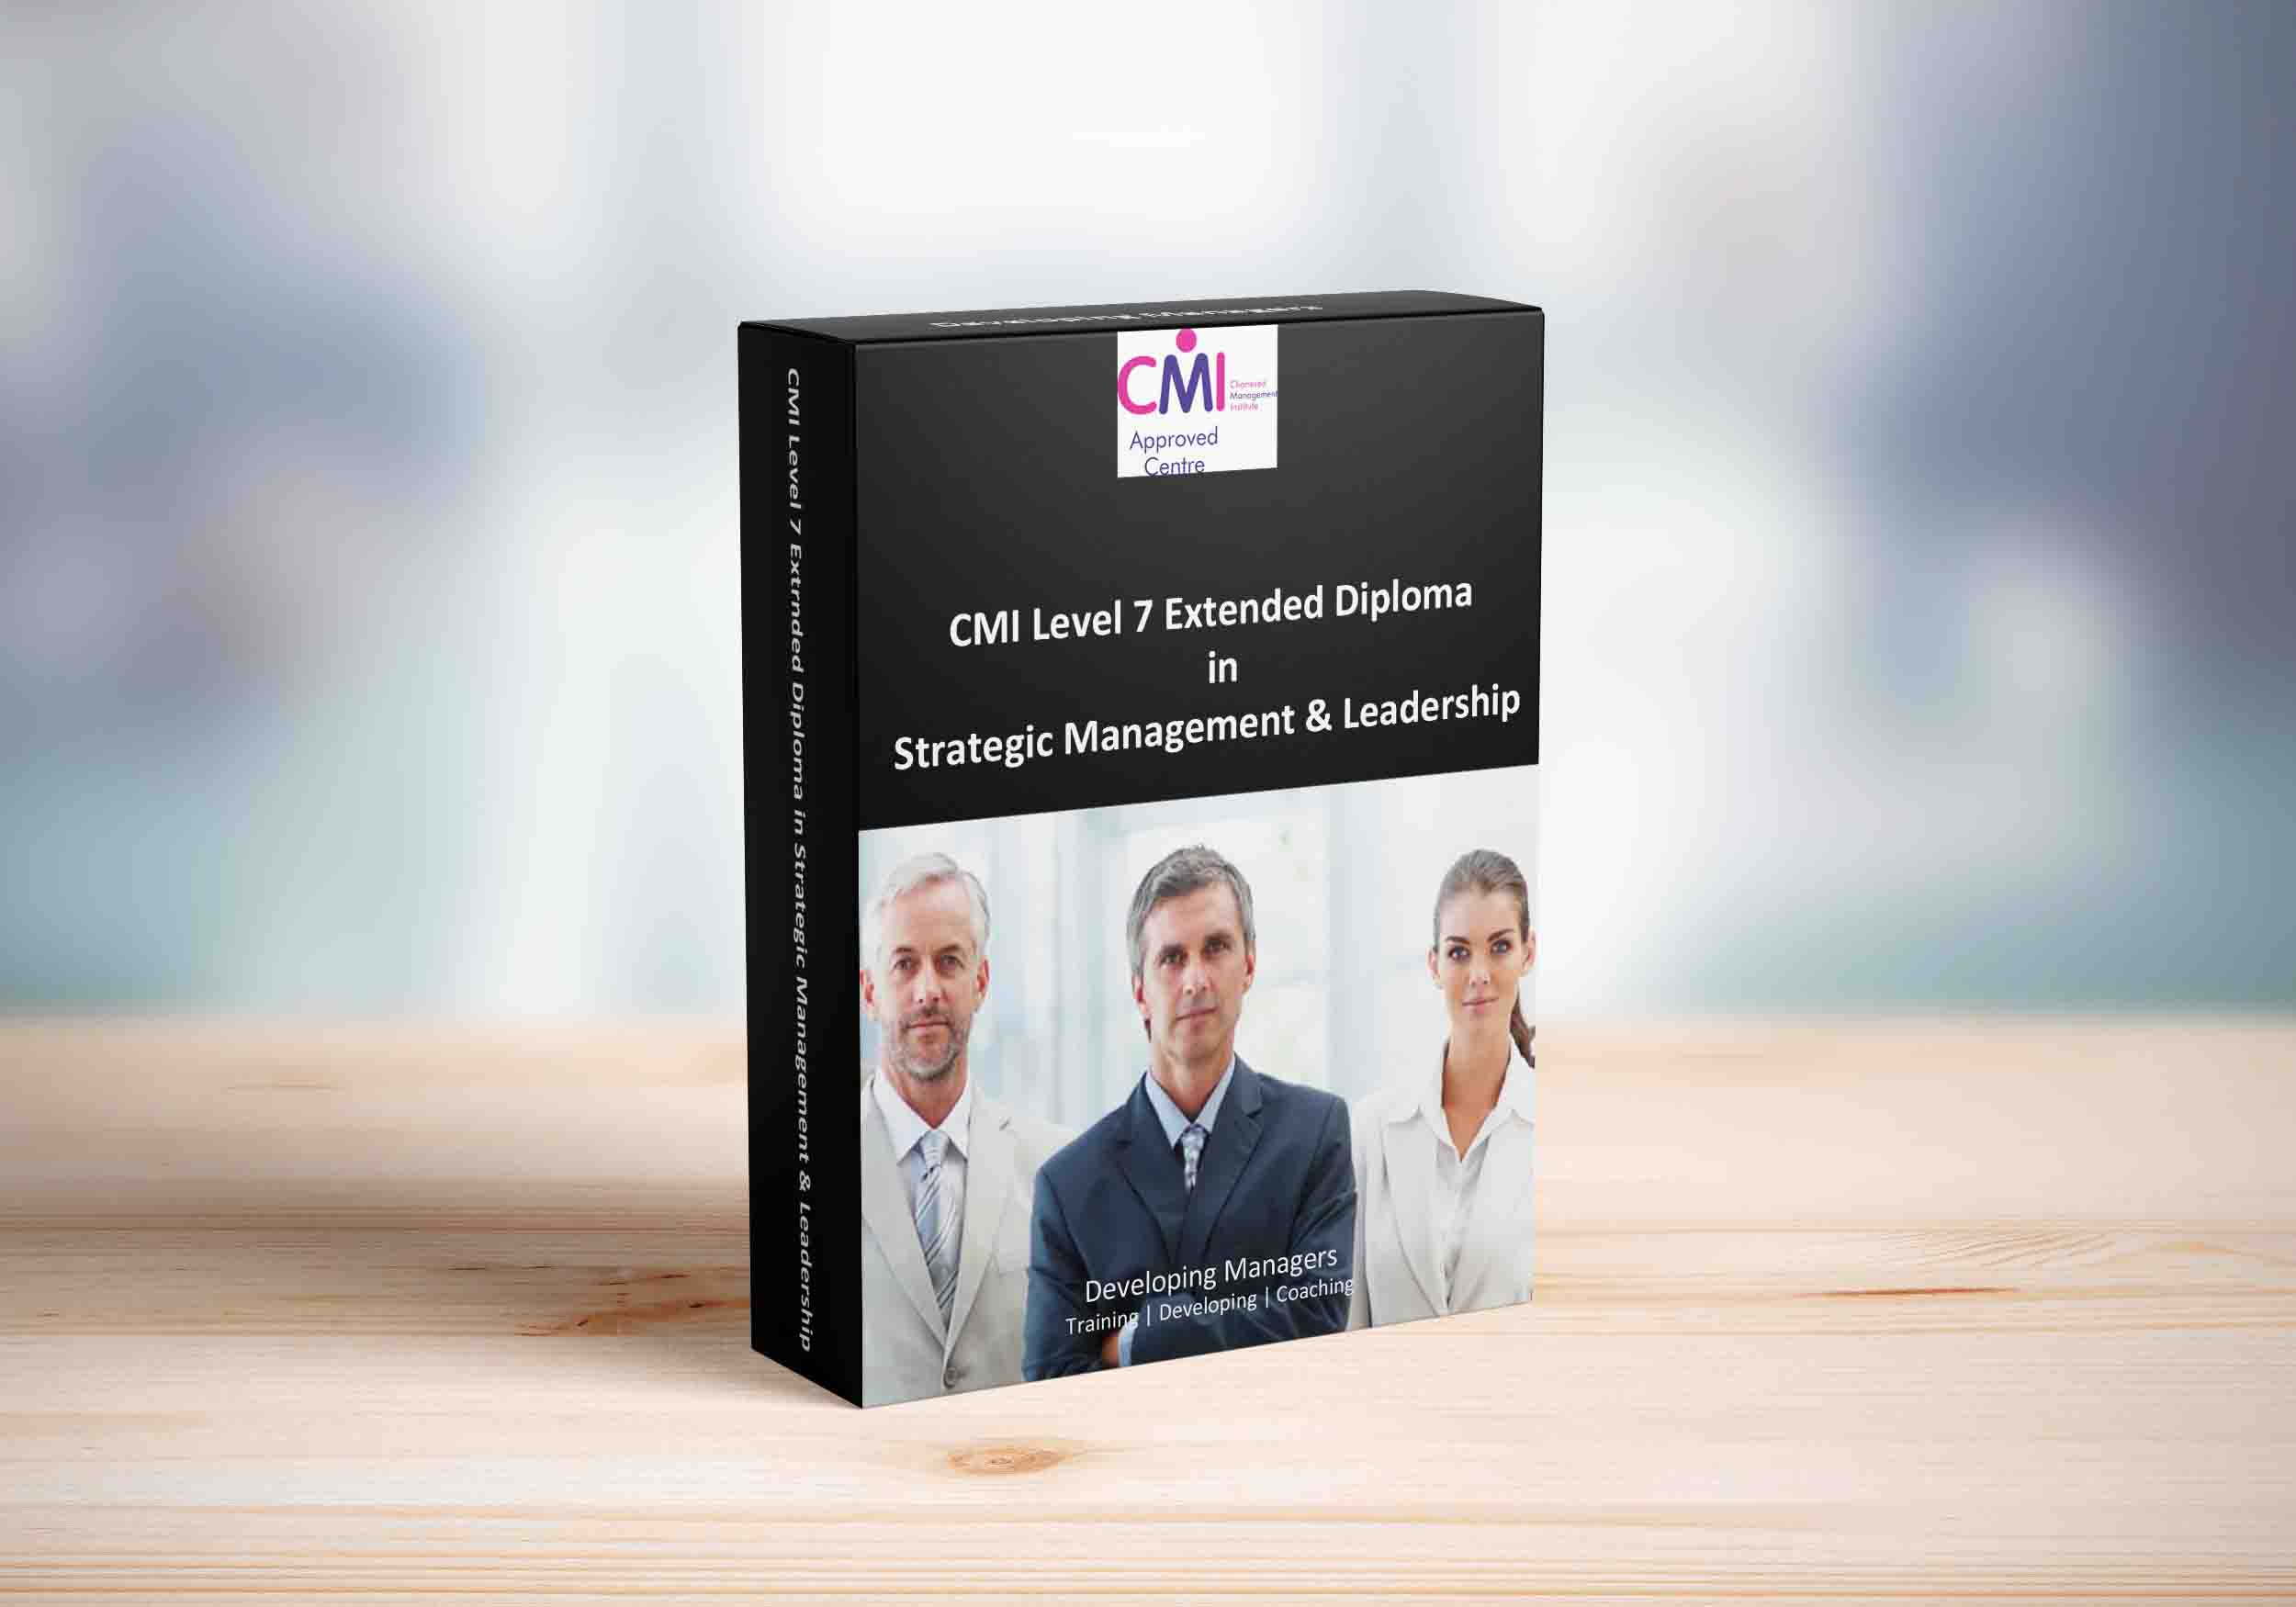 Level 7 Extended Diploma in Strategic Management and Leadership